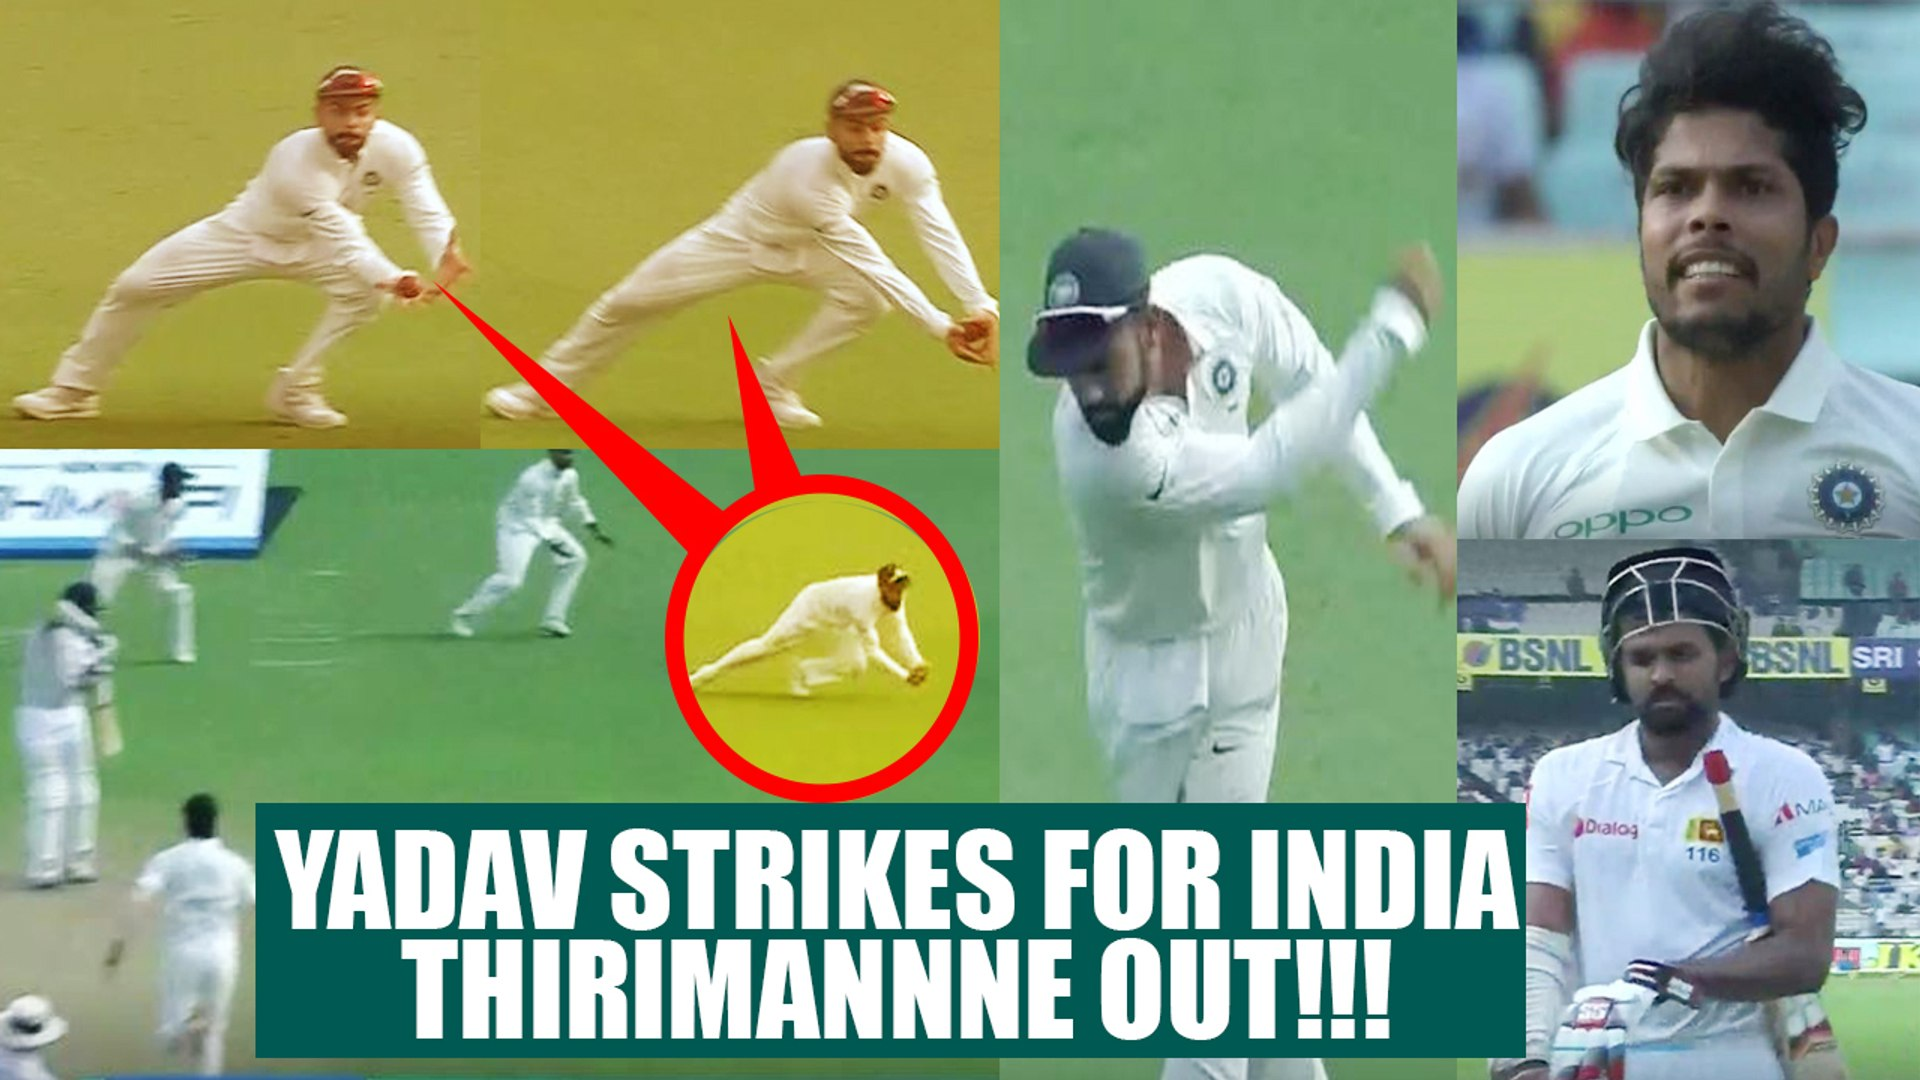 India vs SL 1st test 3rd day : Yadav dismisses Thirimanne , Kohli takes stunner catch |Oneindia News